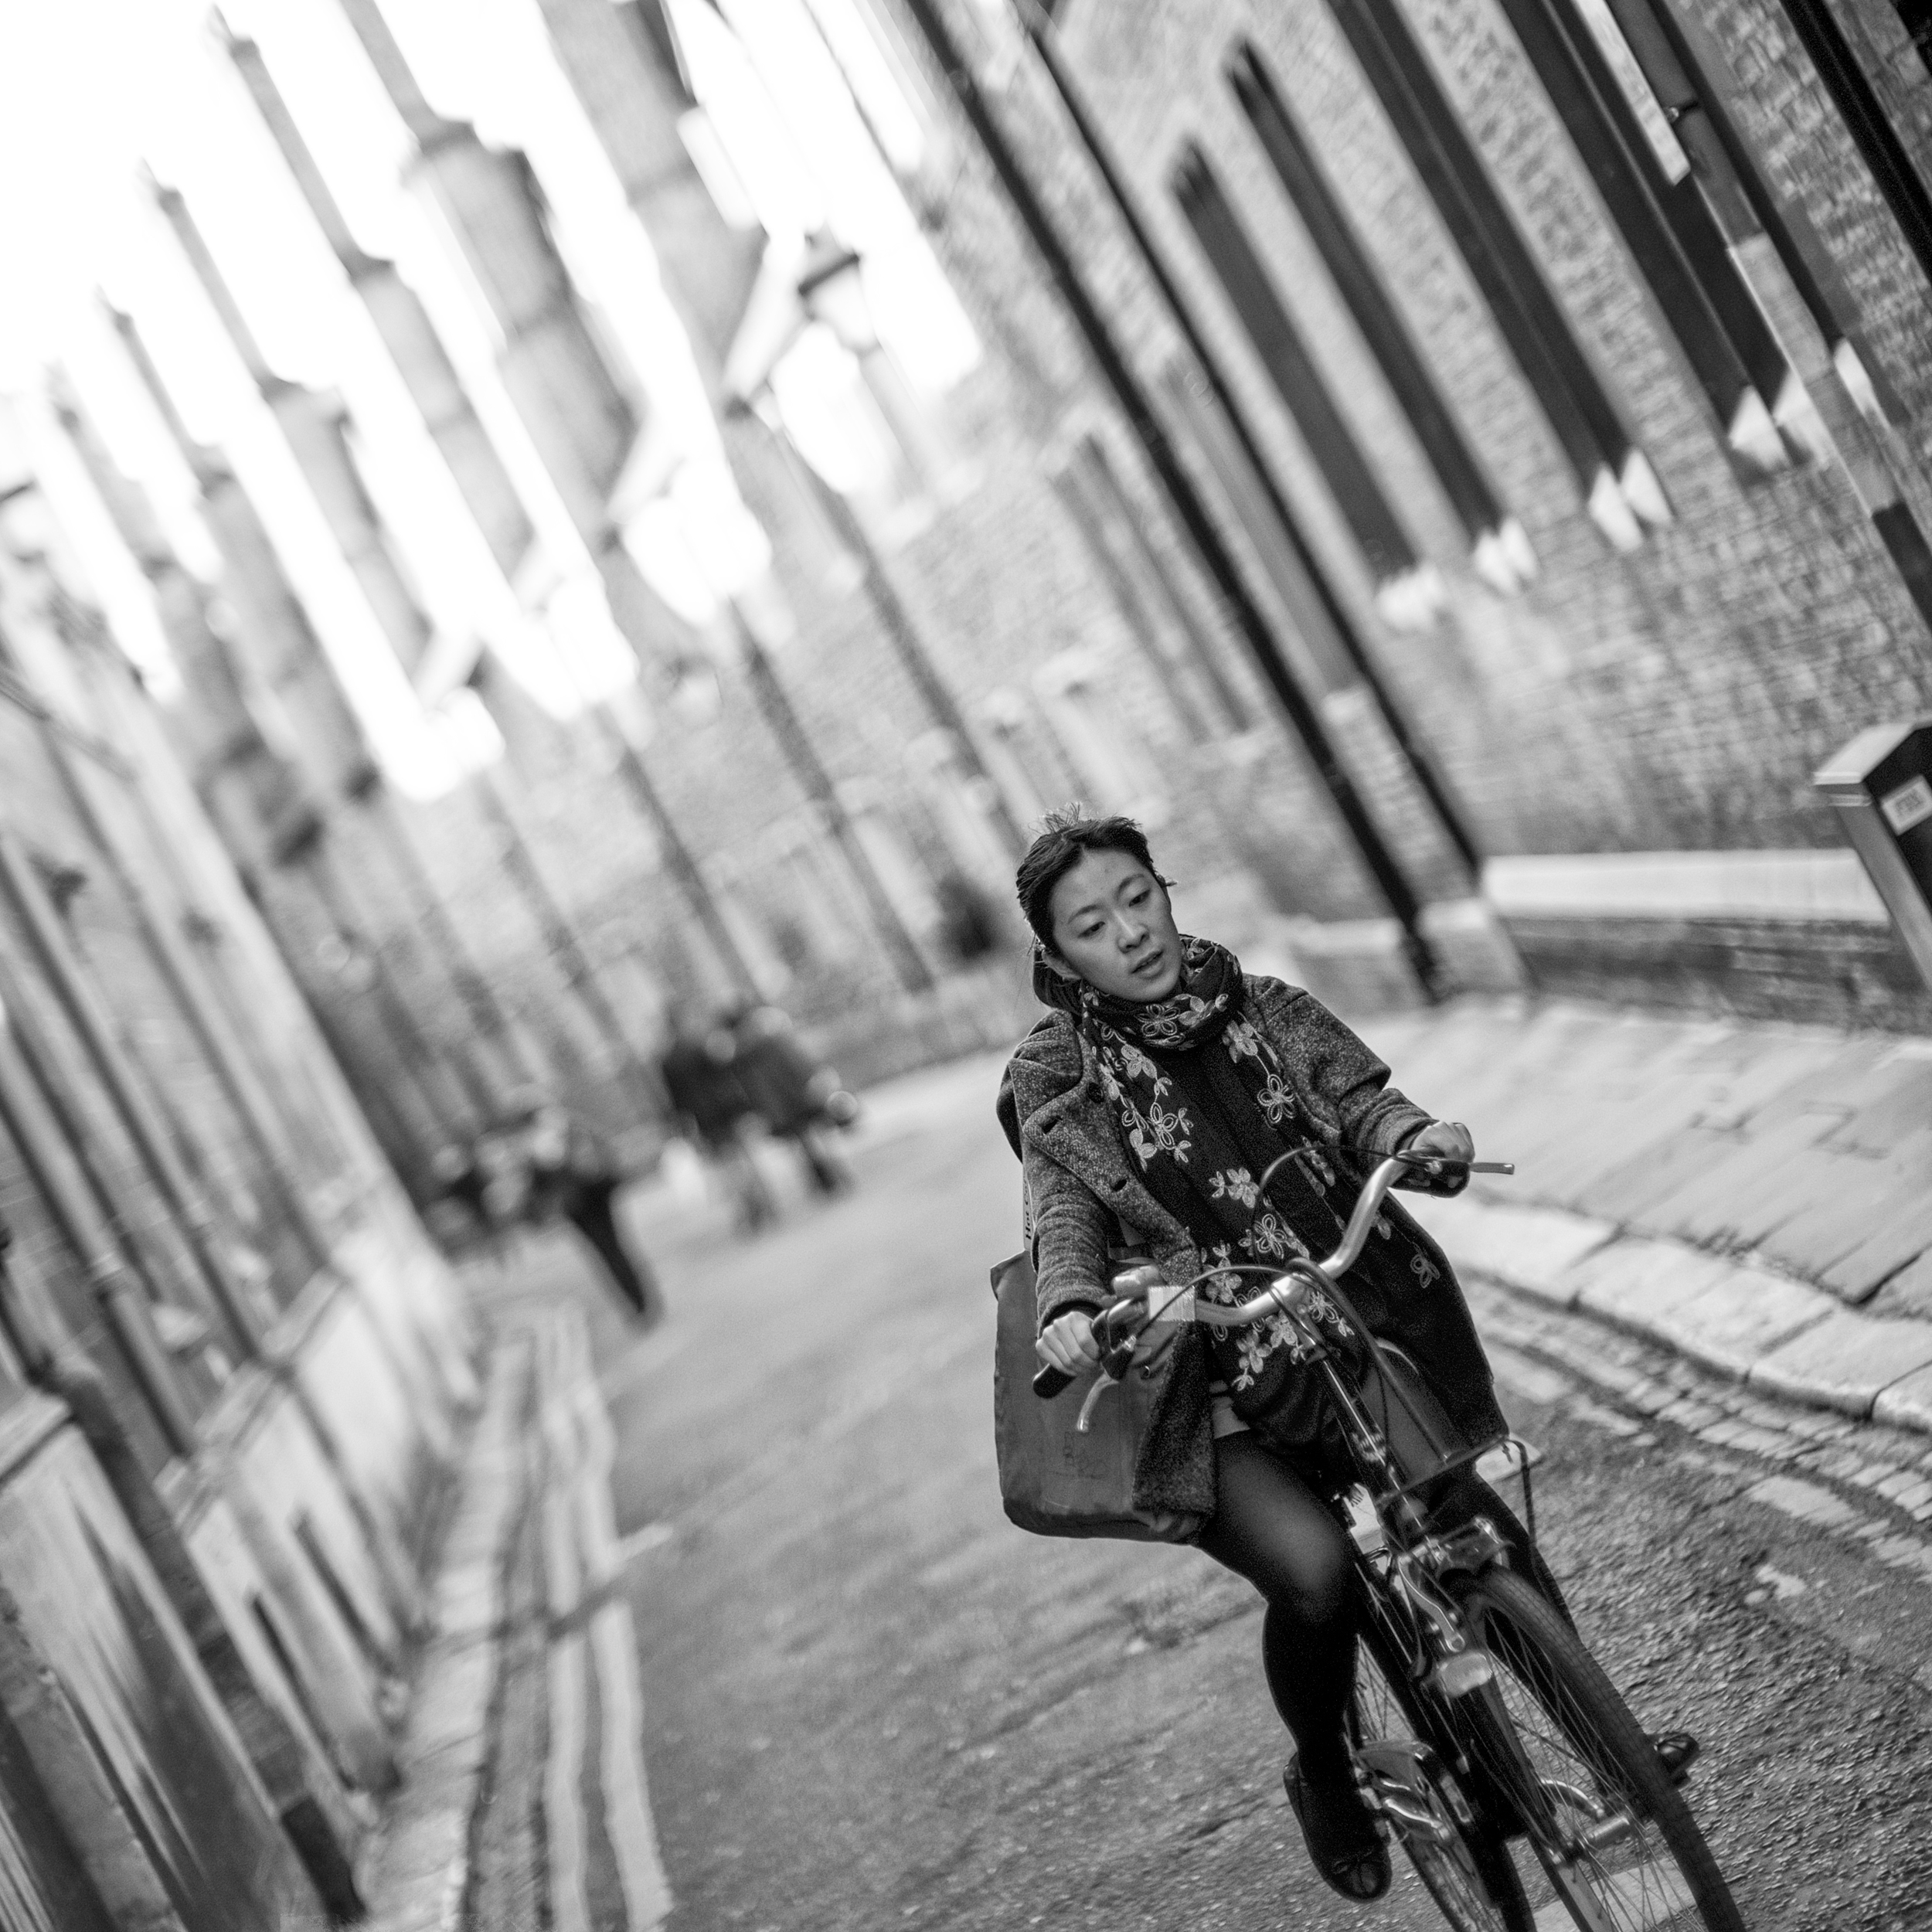 Street photography? Yeah, the Leica SL can handle that. Of course, its size makes it far less stealthy than something like the Leica M's or a Leica Q.